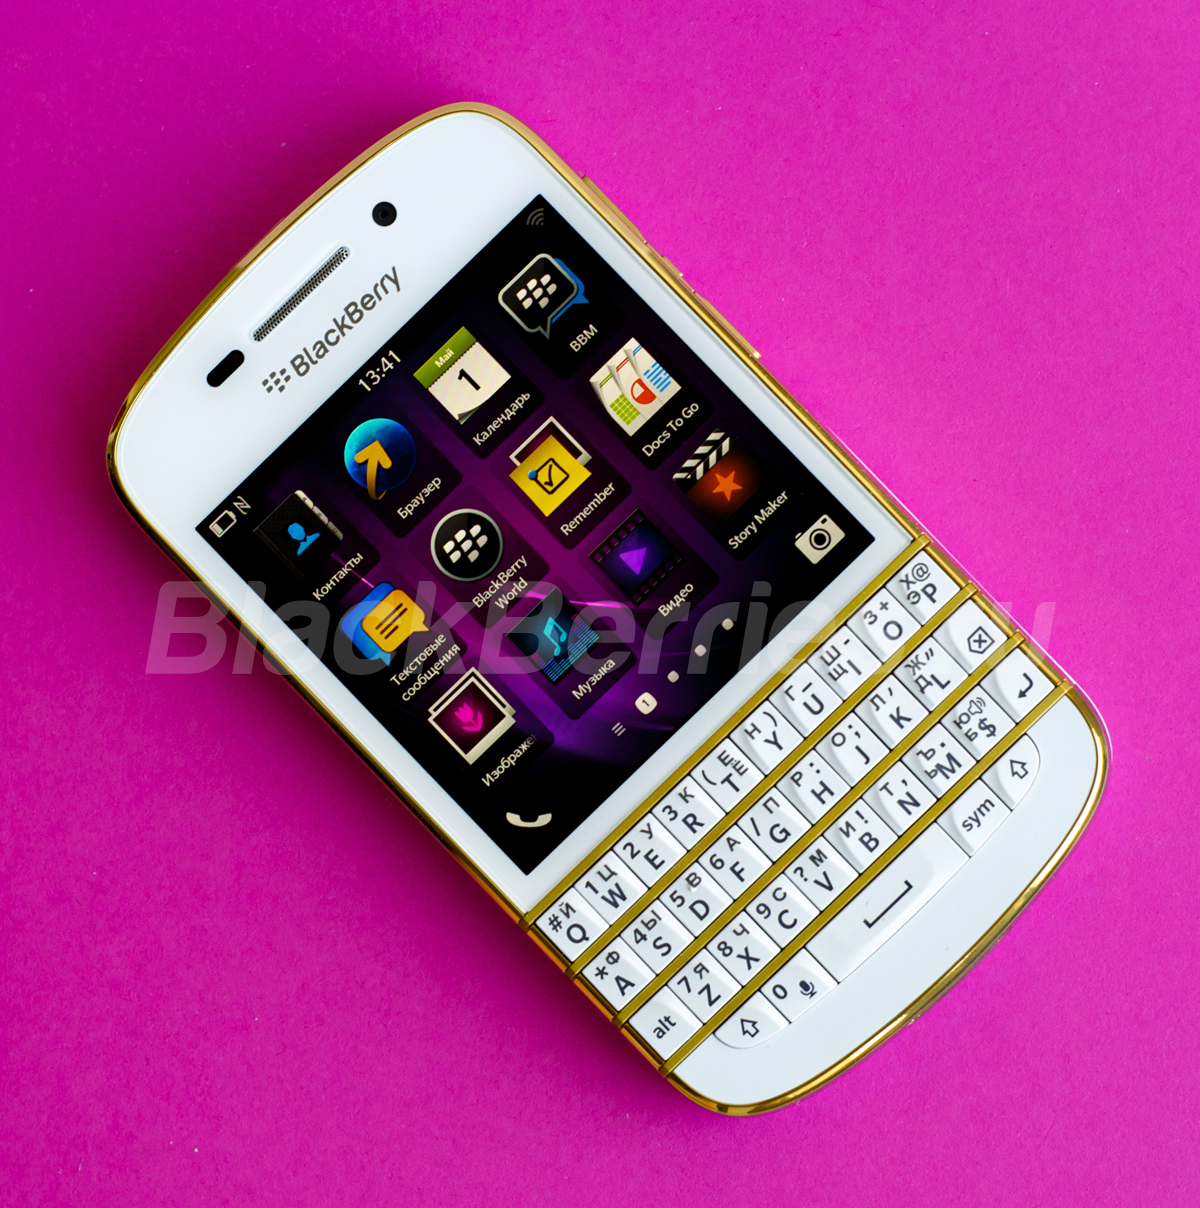 BlackBerry-Q10-Special-Edition-39